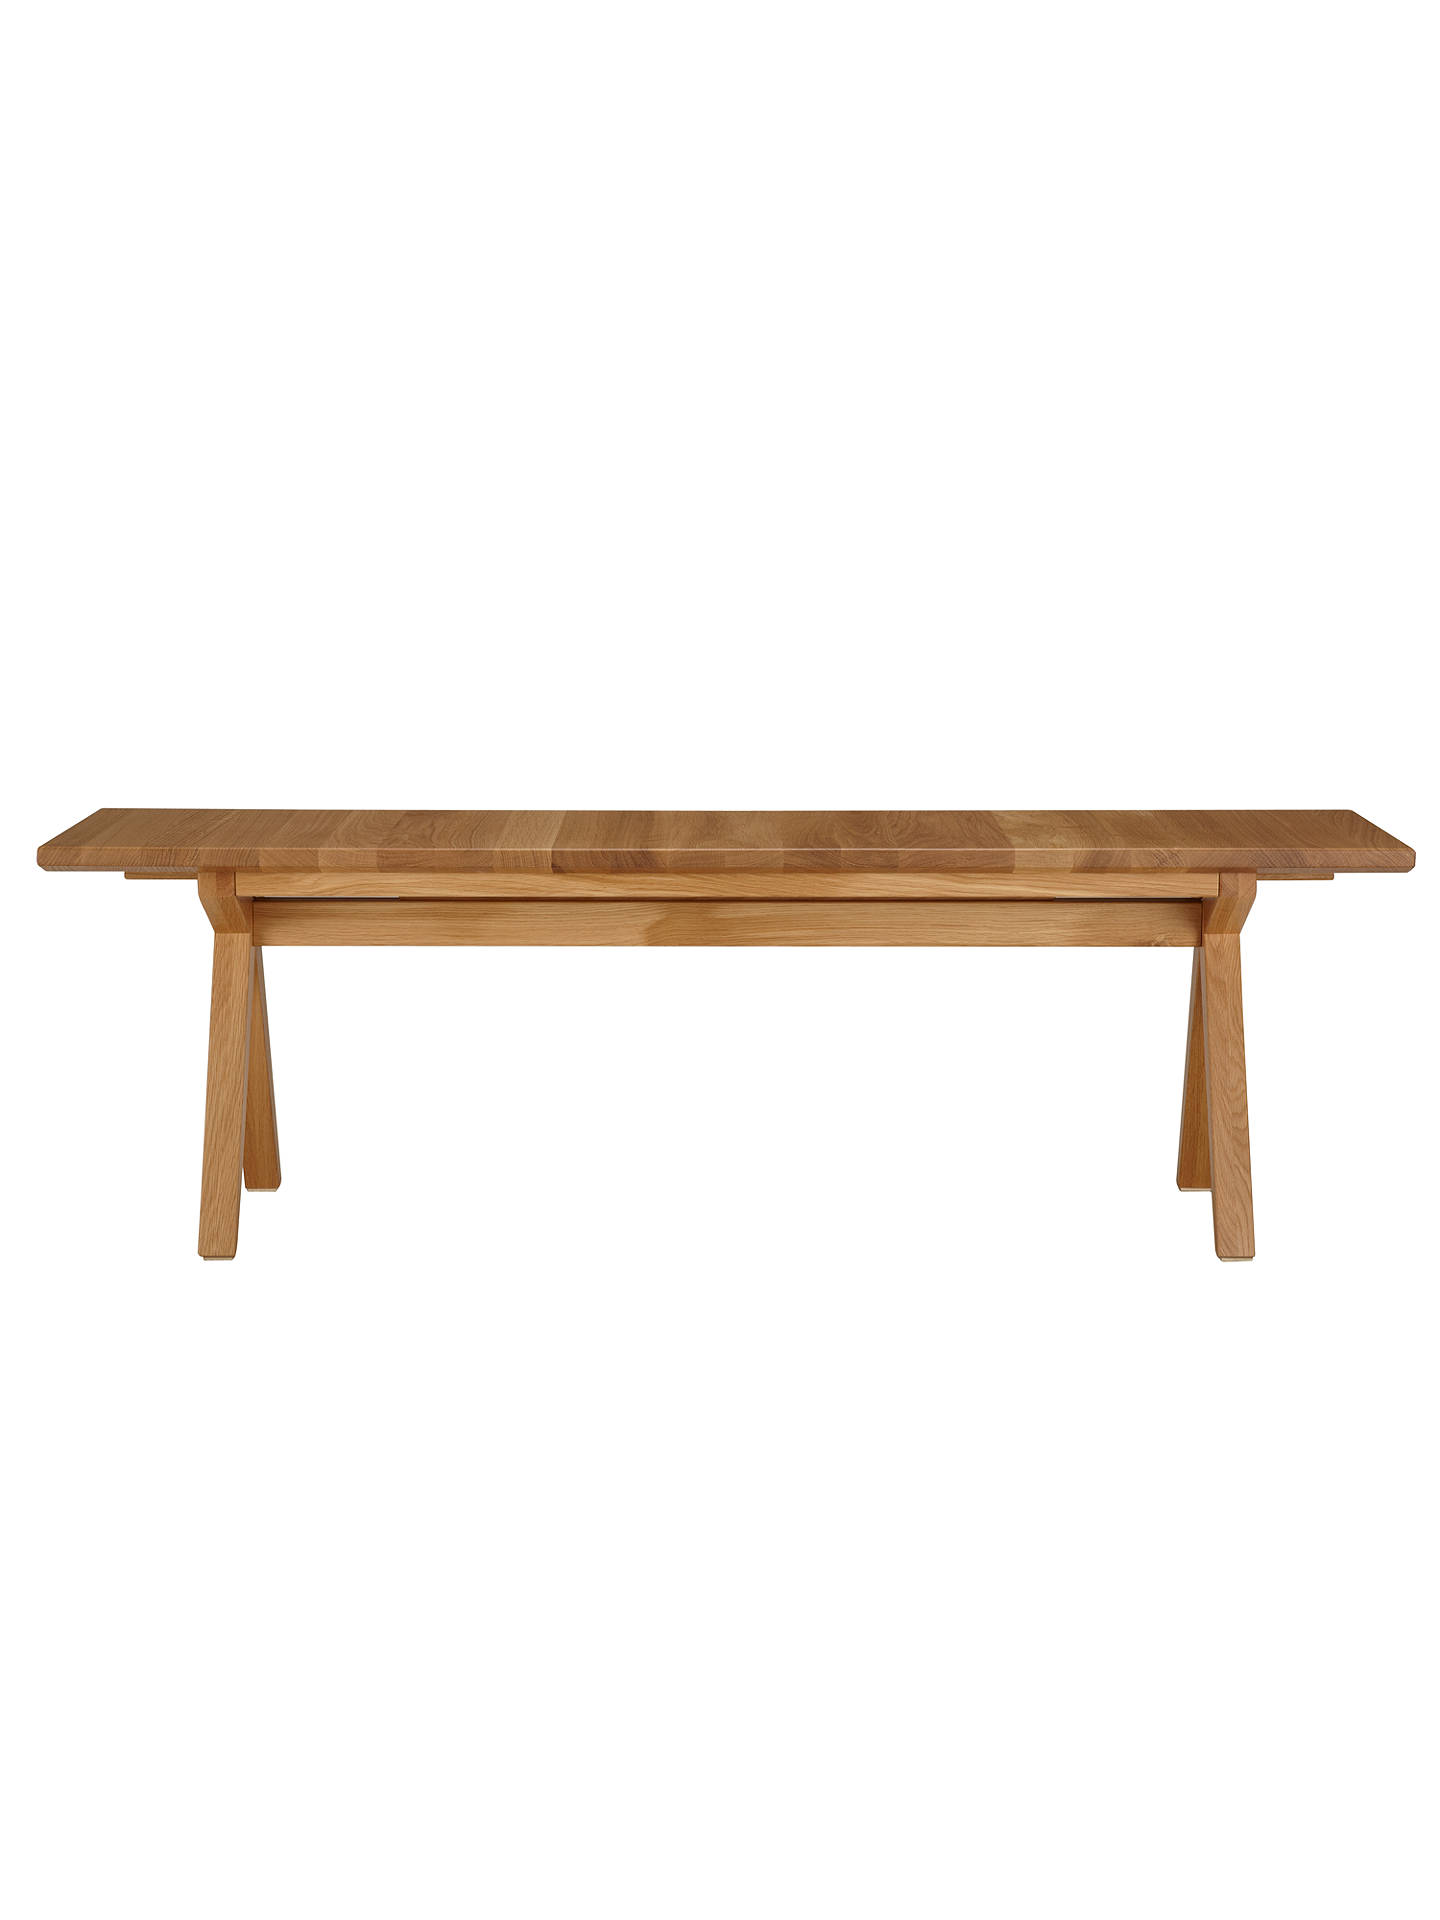 BuyBethan Gray for John Lewis Newman Large Dining Bench Online at johnlewis.com